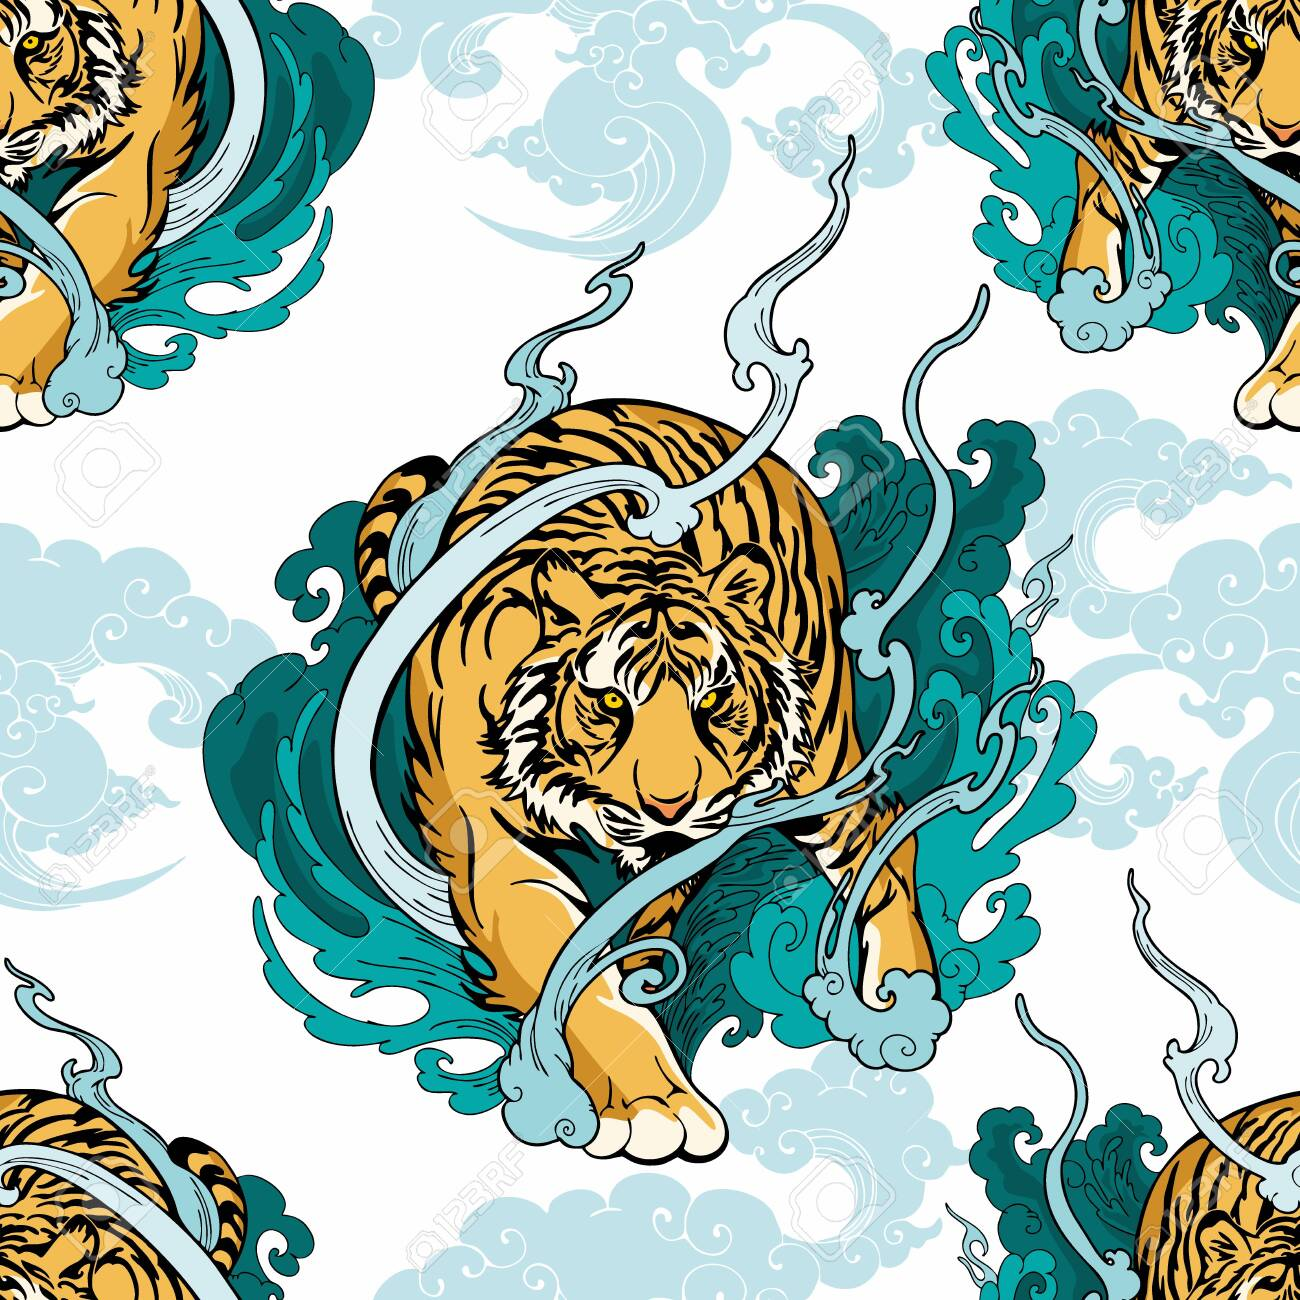 Illustration doodle and paint Tiger walking on cloud or haven Illustration doodle and paint design for seamless pattern with white background - 130424122